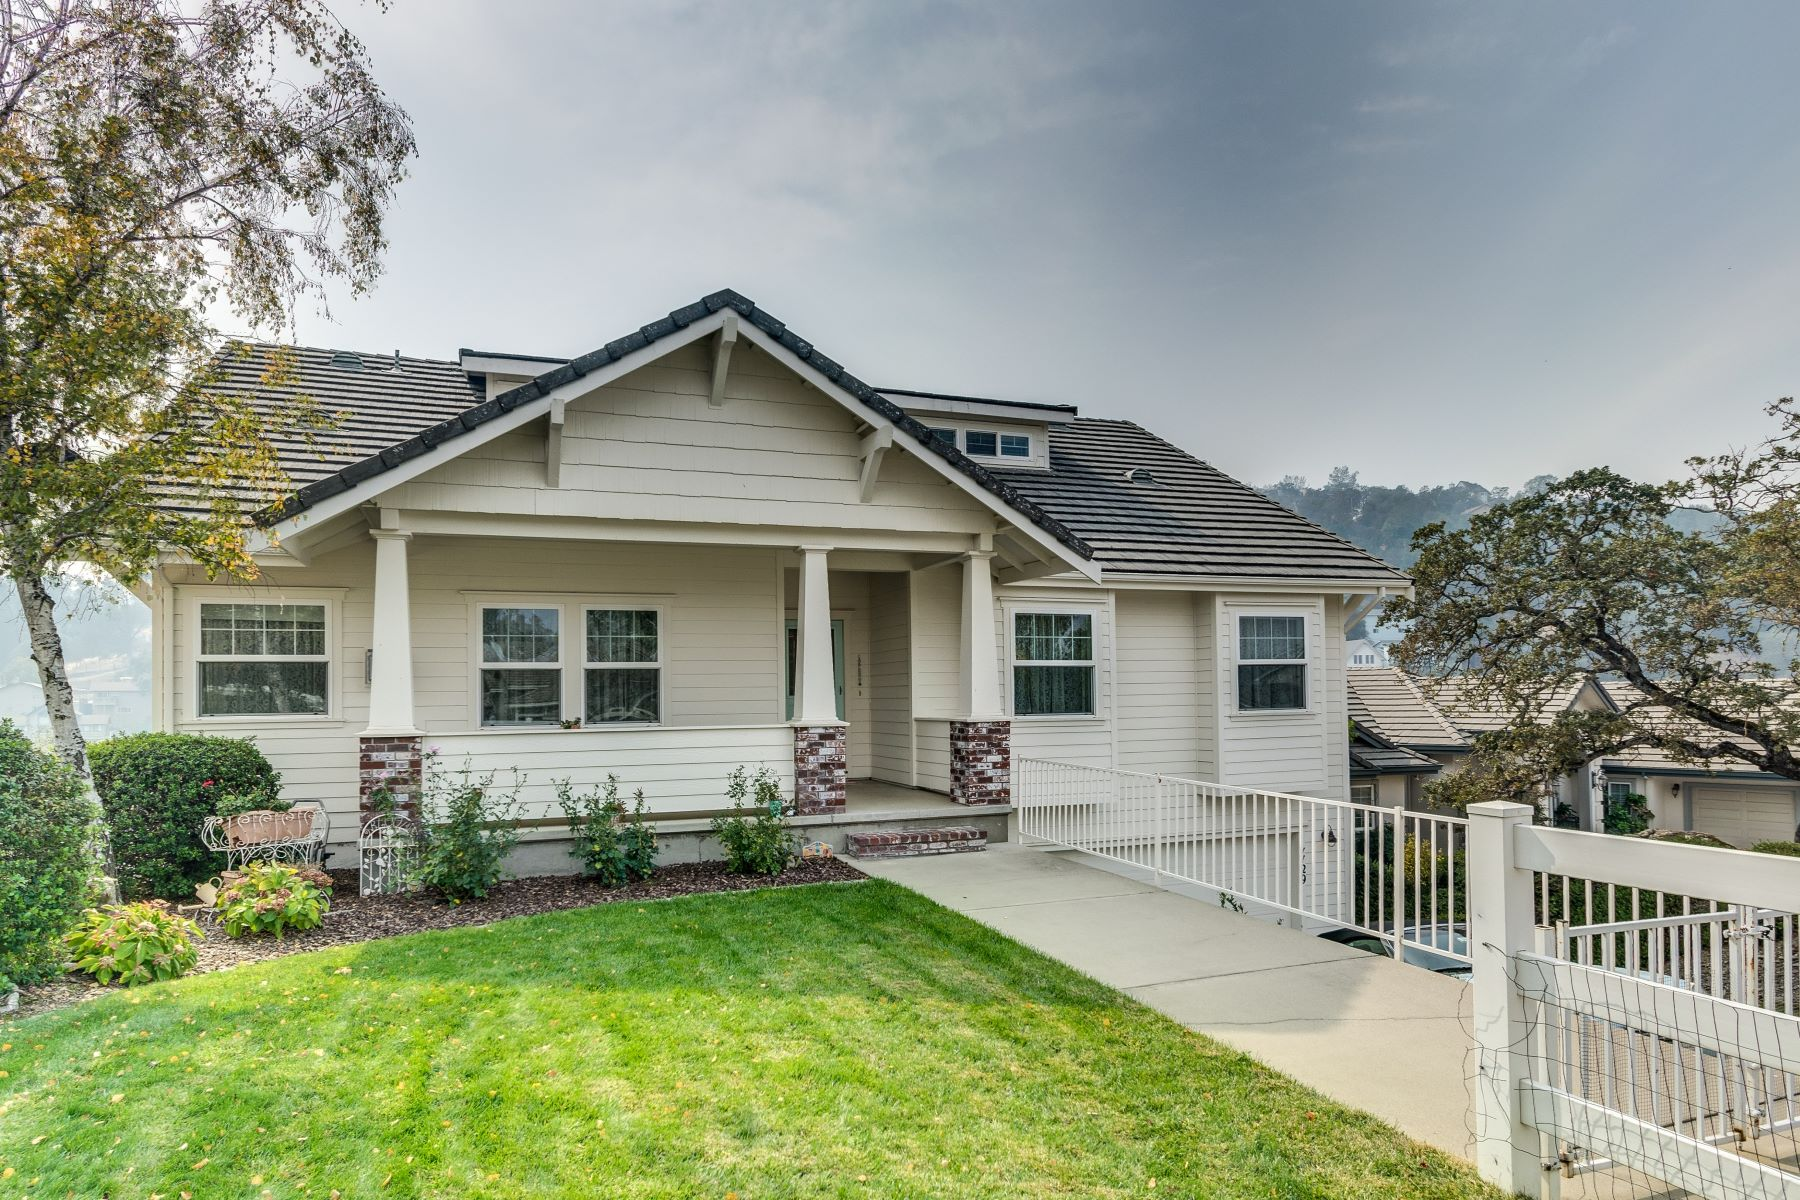 Single Family Home for Sale at 1129 Shoreline Ct 1129 Shoreline Ct Copperopolis, California 95228 United States